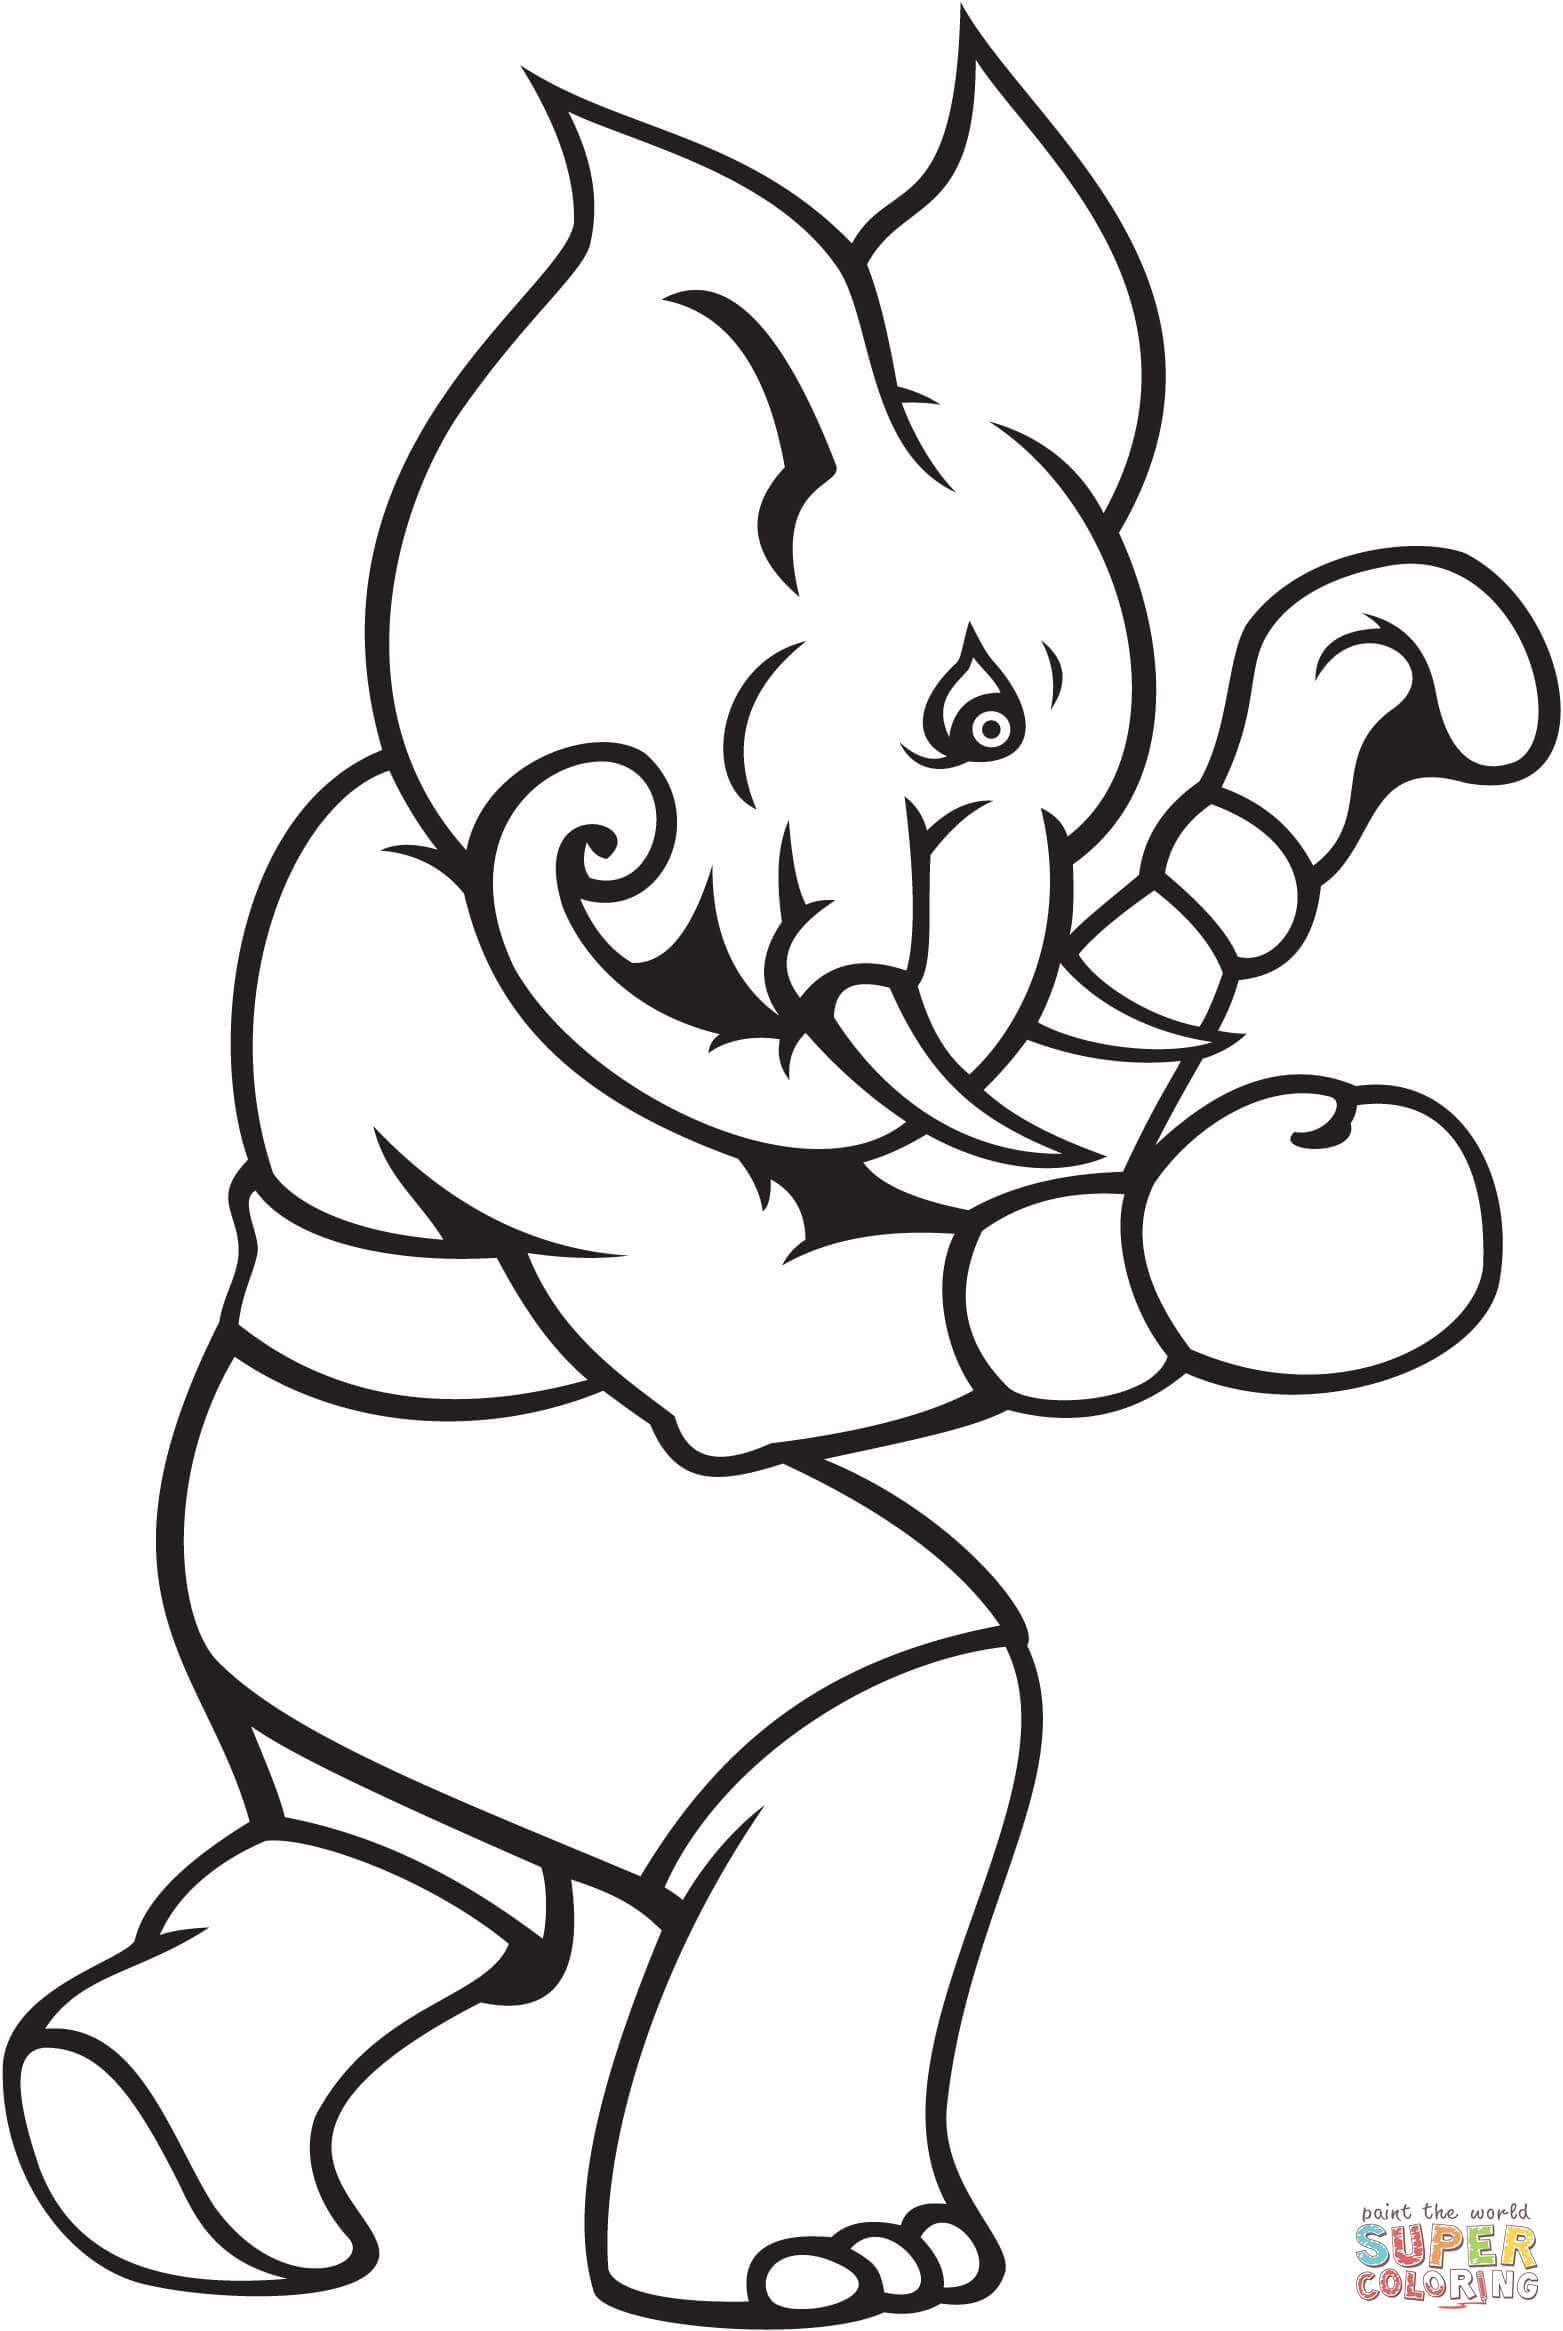 boxing-coloring-page-0022-q1